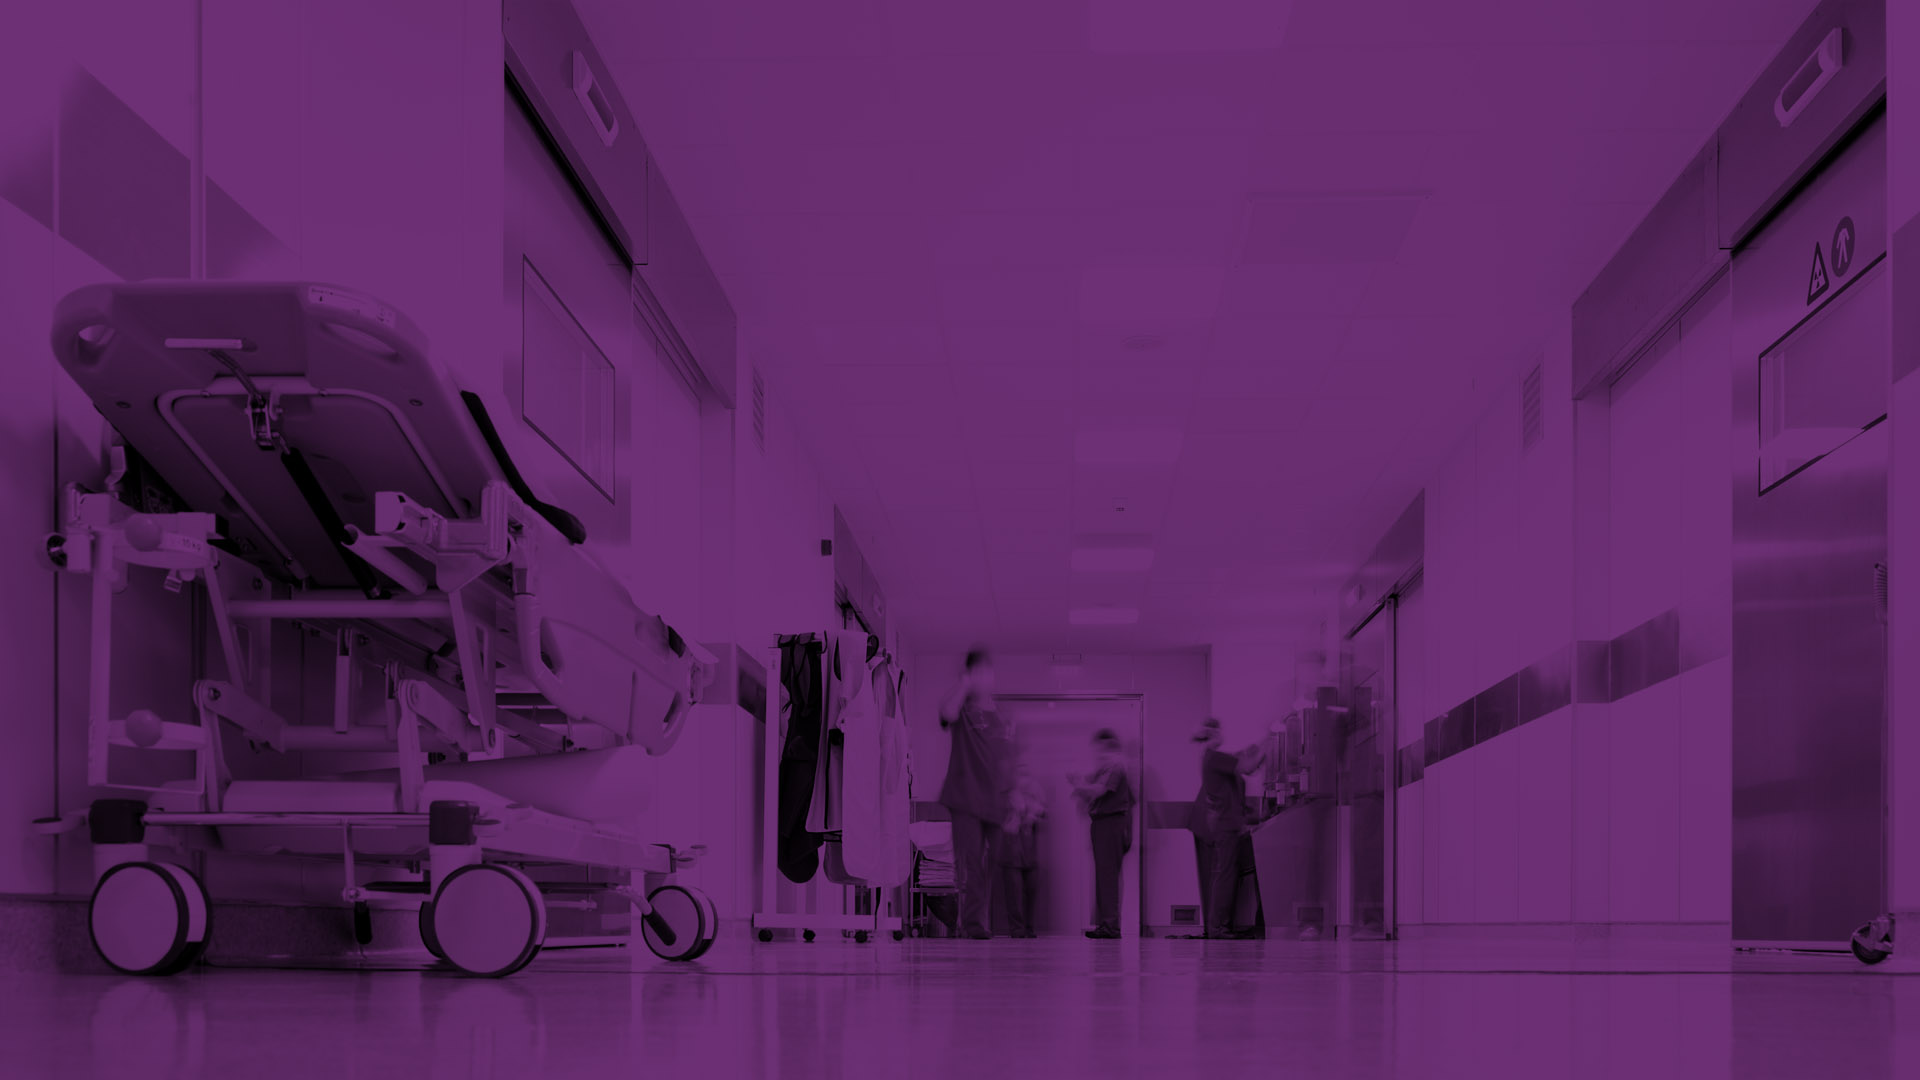 Operational challenges in healthcare